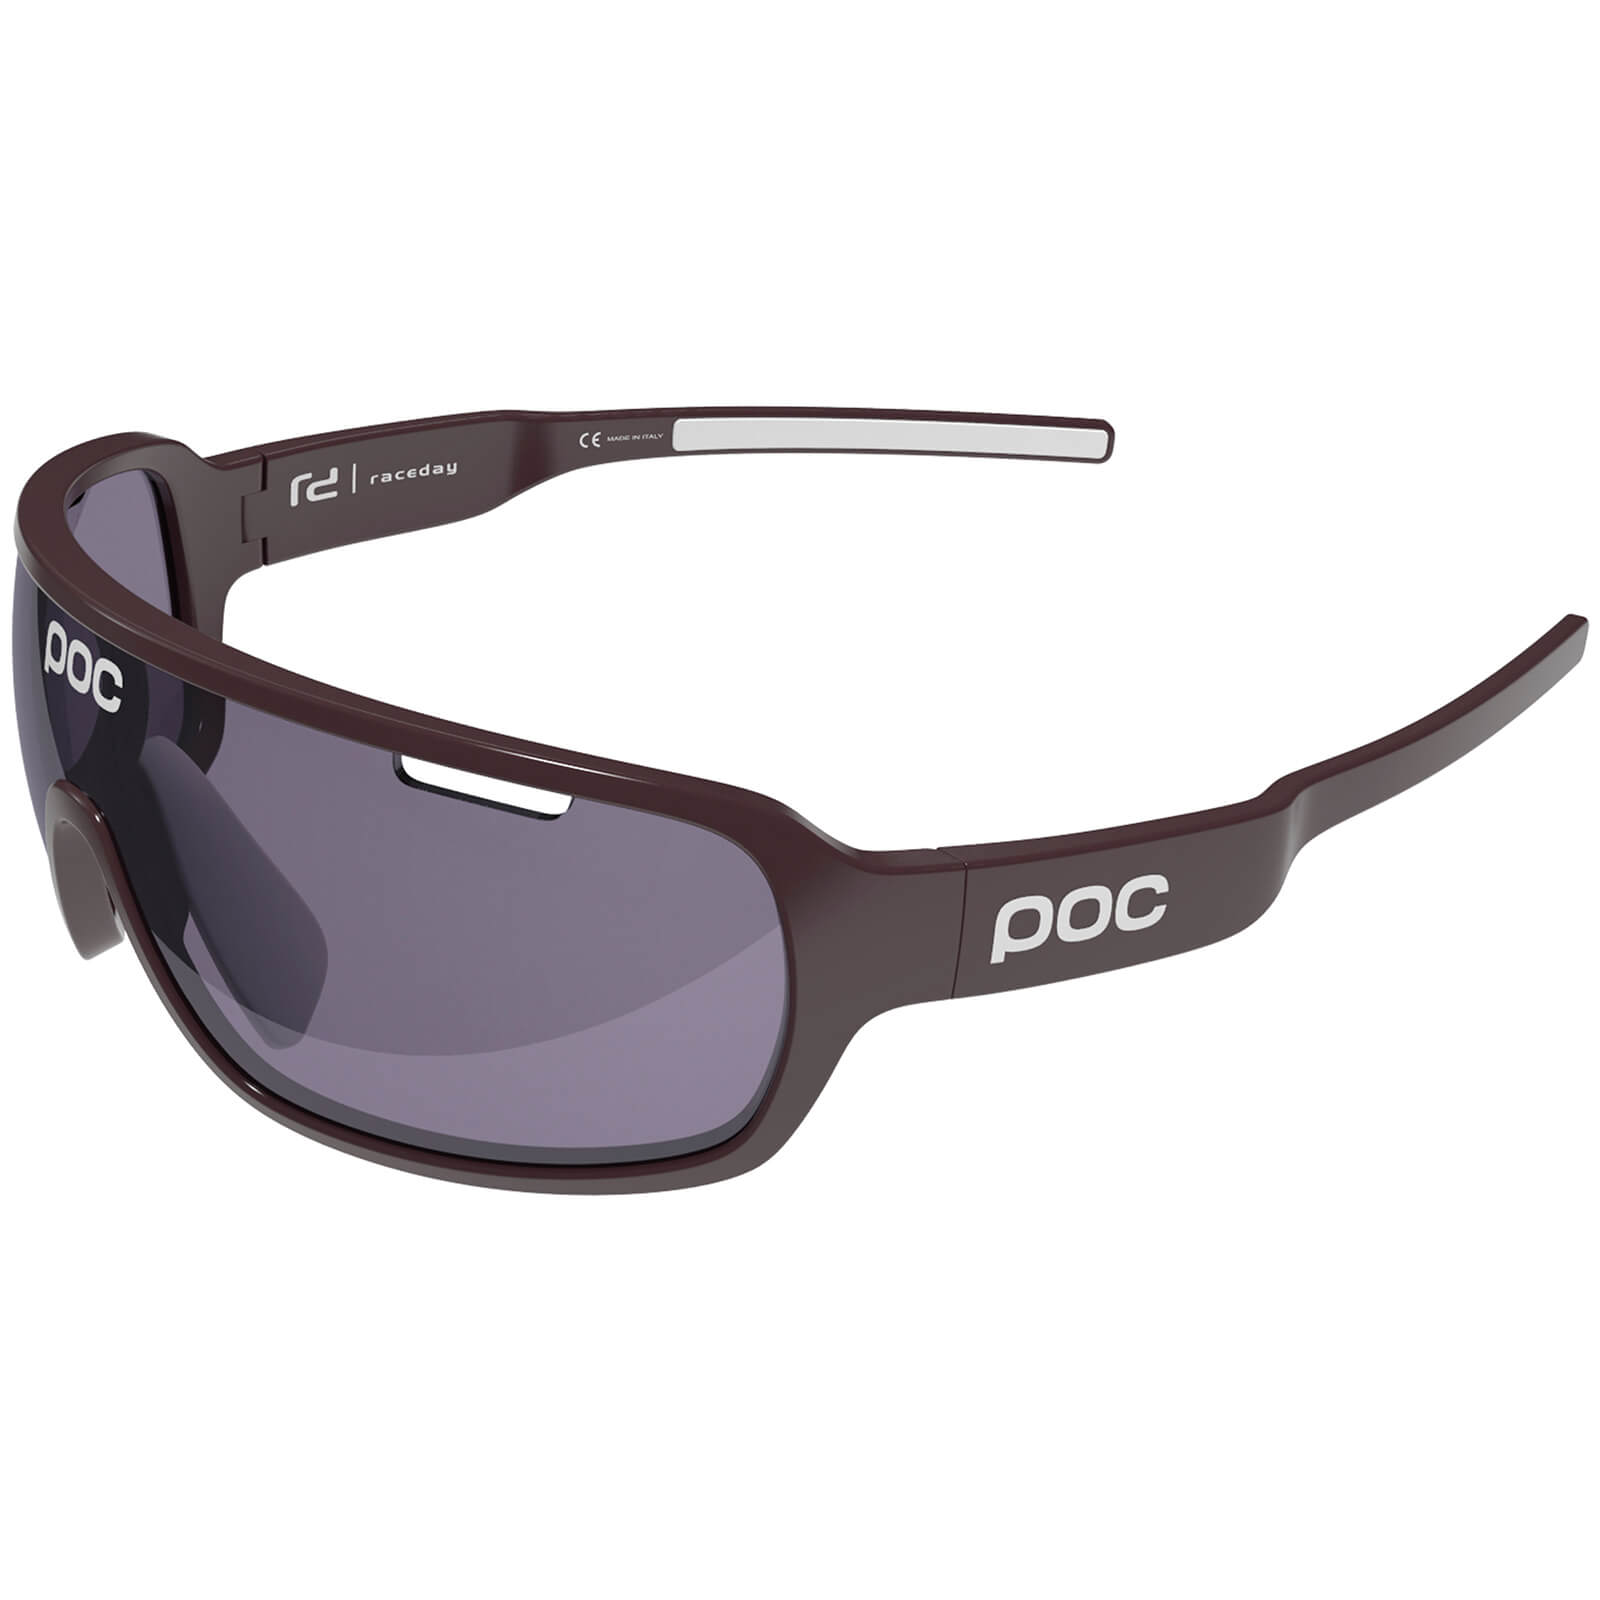 POC DO Raceday Sunglasses - Granate Red/Hydrogen White